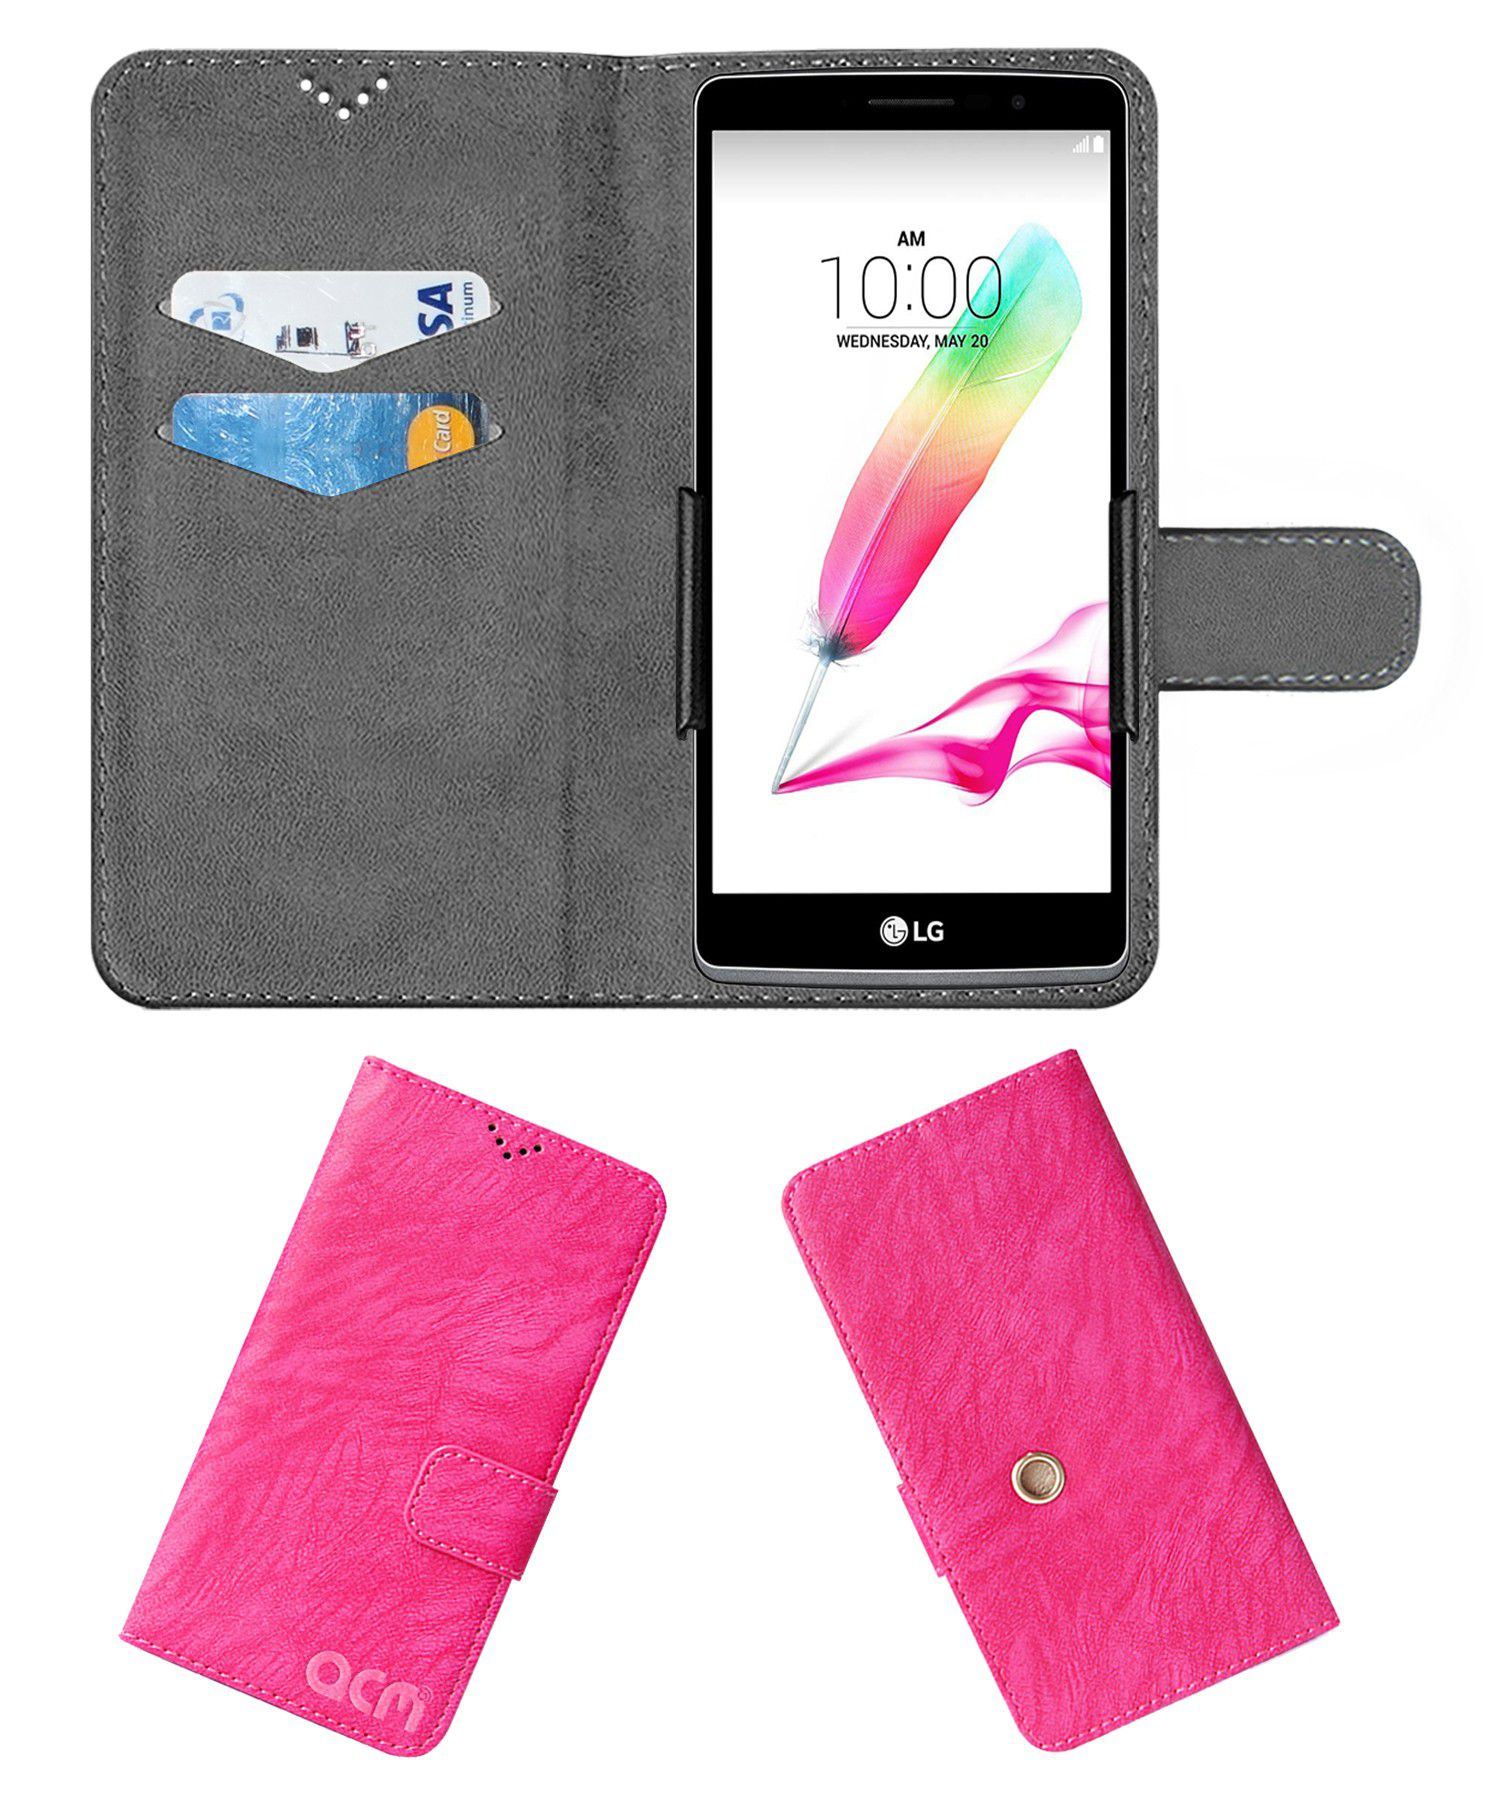 Lg H540d Flip Cover by ACM - Pink Clip holder to hold your mobile securely